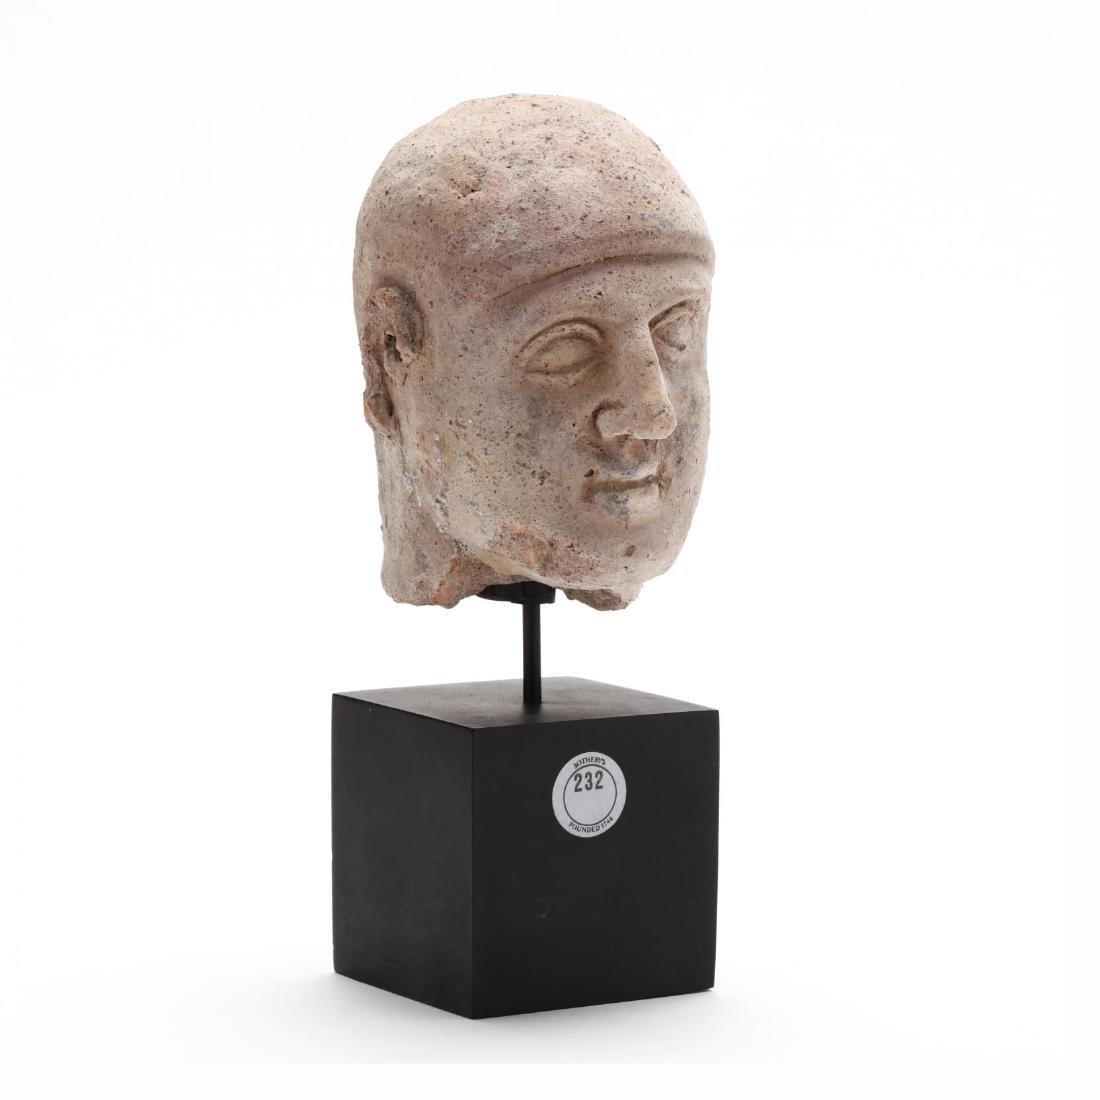 Cypriot Terracotta Head of a Man